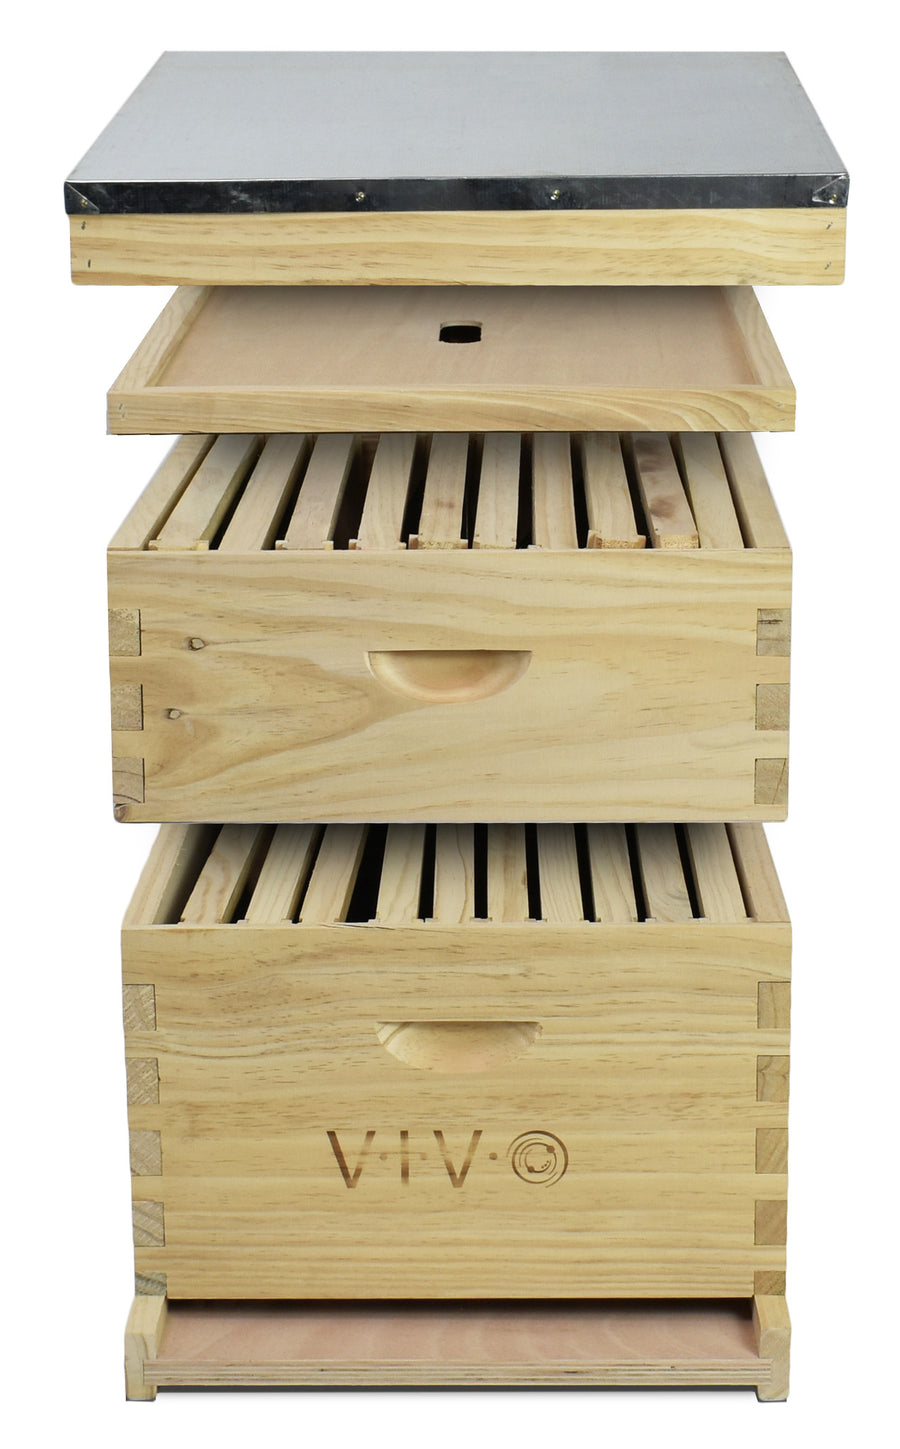 inside of 20 frame bee hive box kit by VIVO